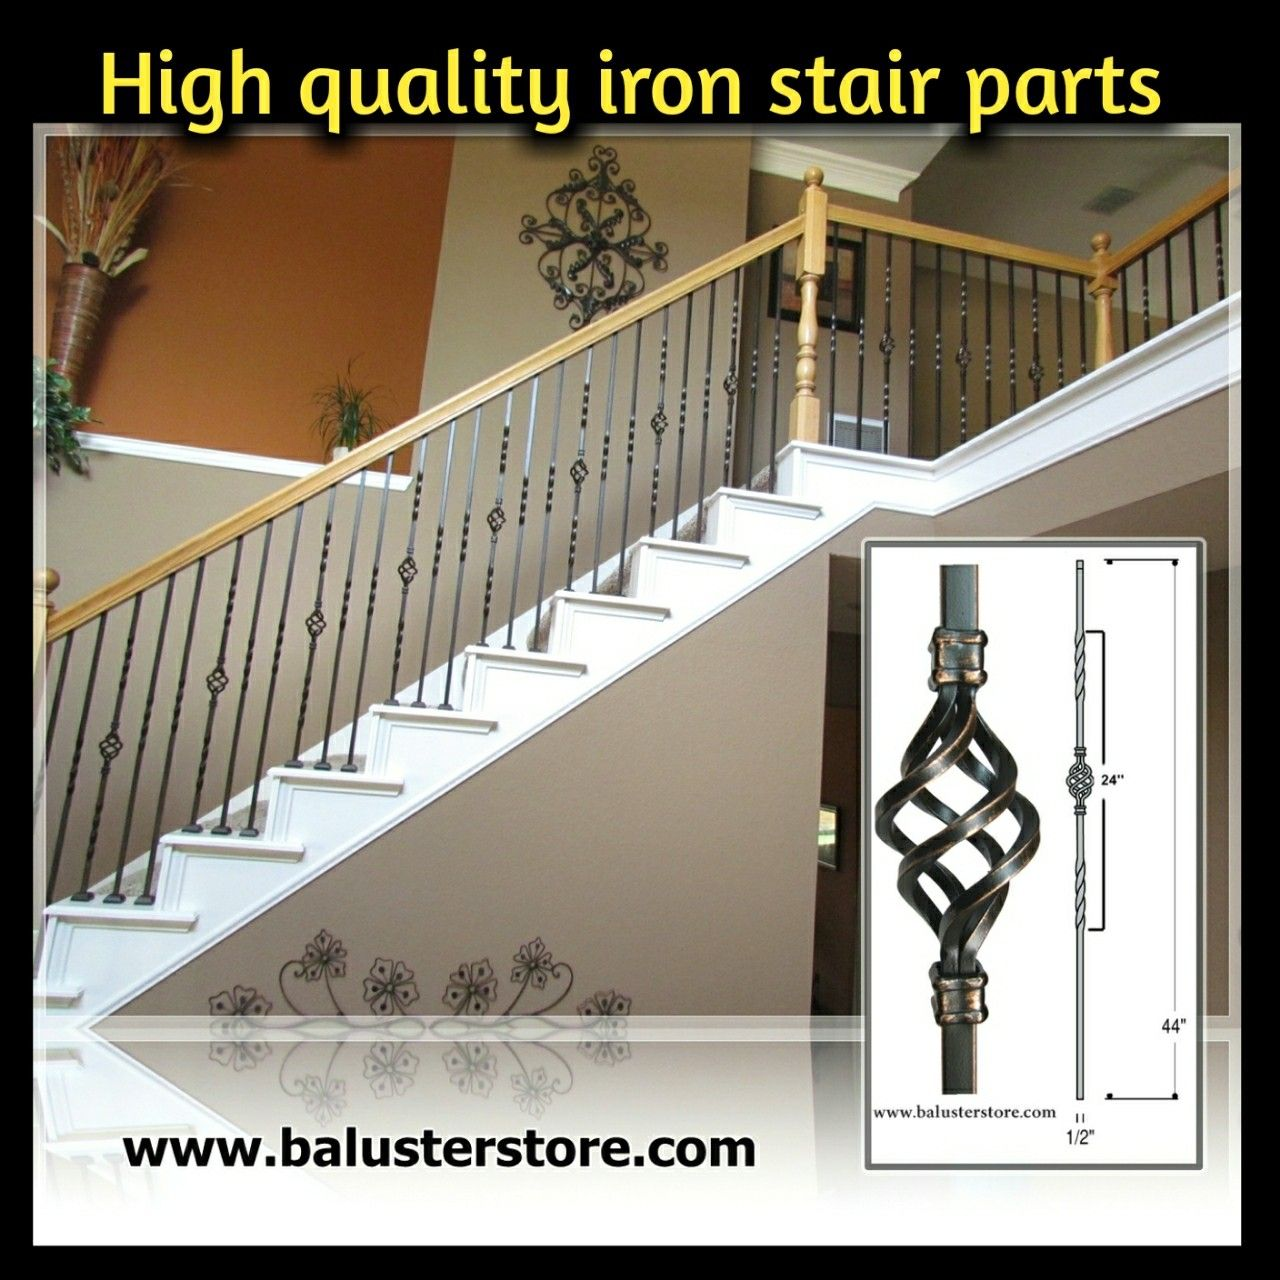 Www.balusterstore.com Shop.balusterstore.com Iron Balusters Iron Stair Parts  Iron